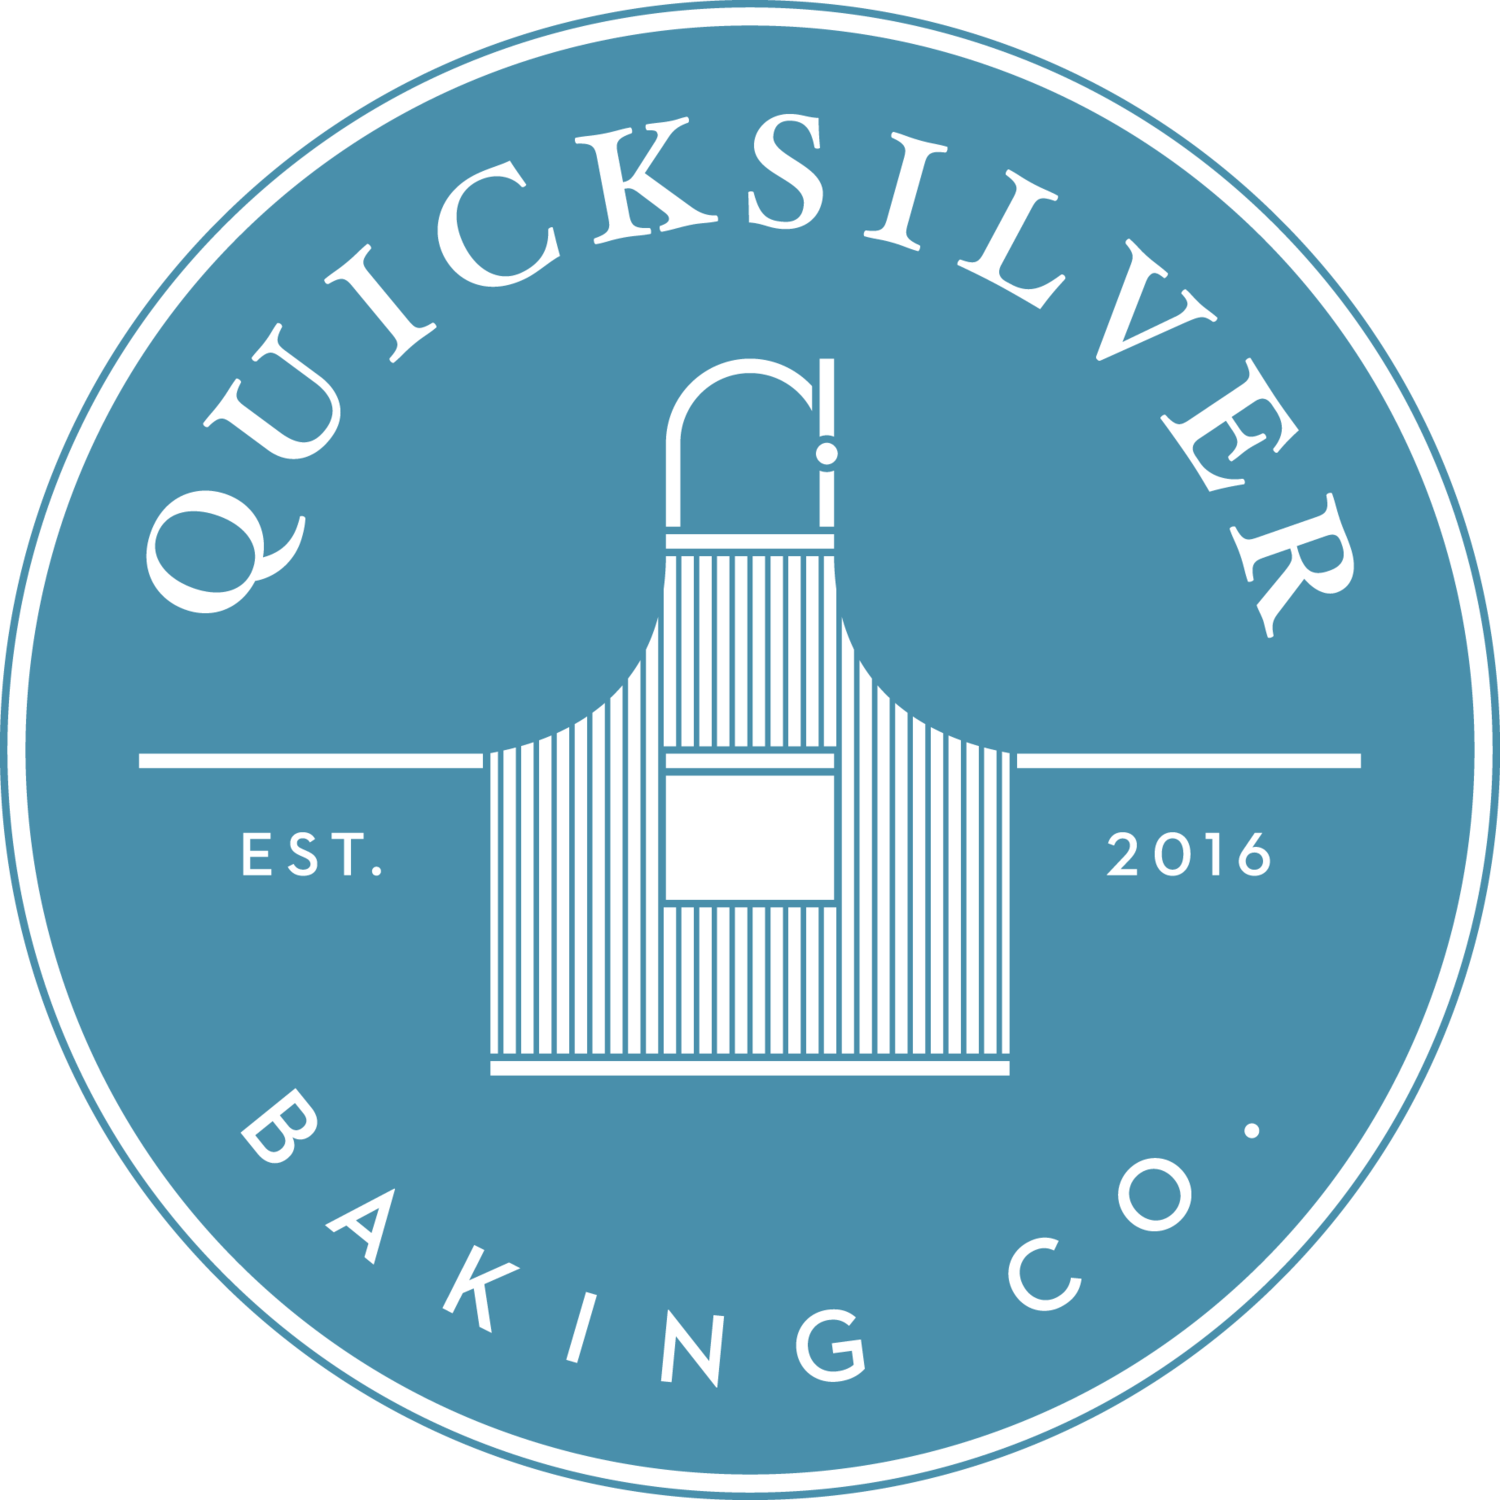 Quicksilver Baking Co